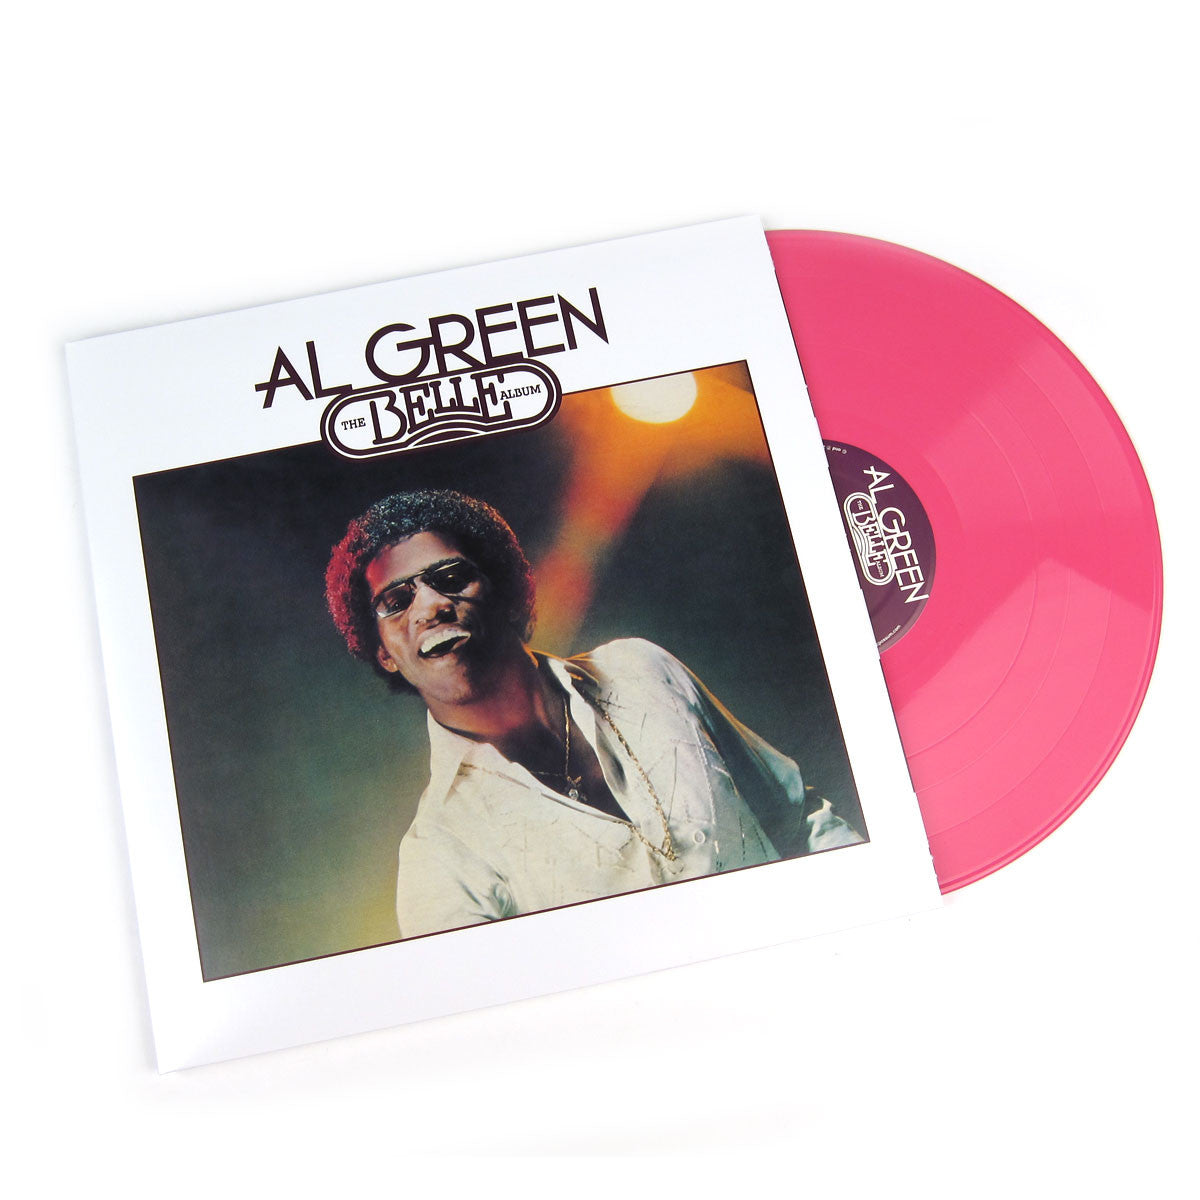 Al Green: The Belle Album (Colored Vinyl) Pink Vinyl LP